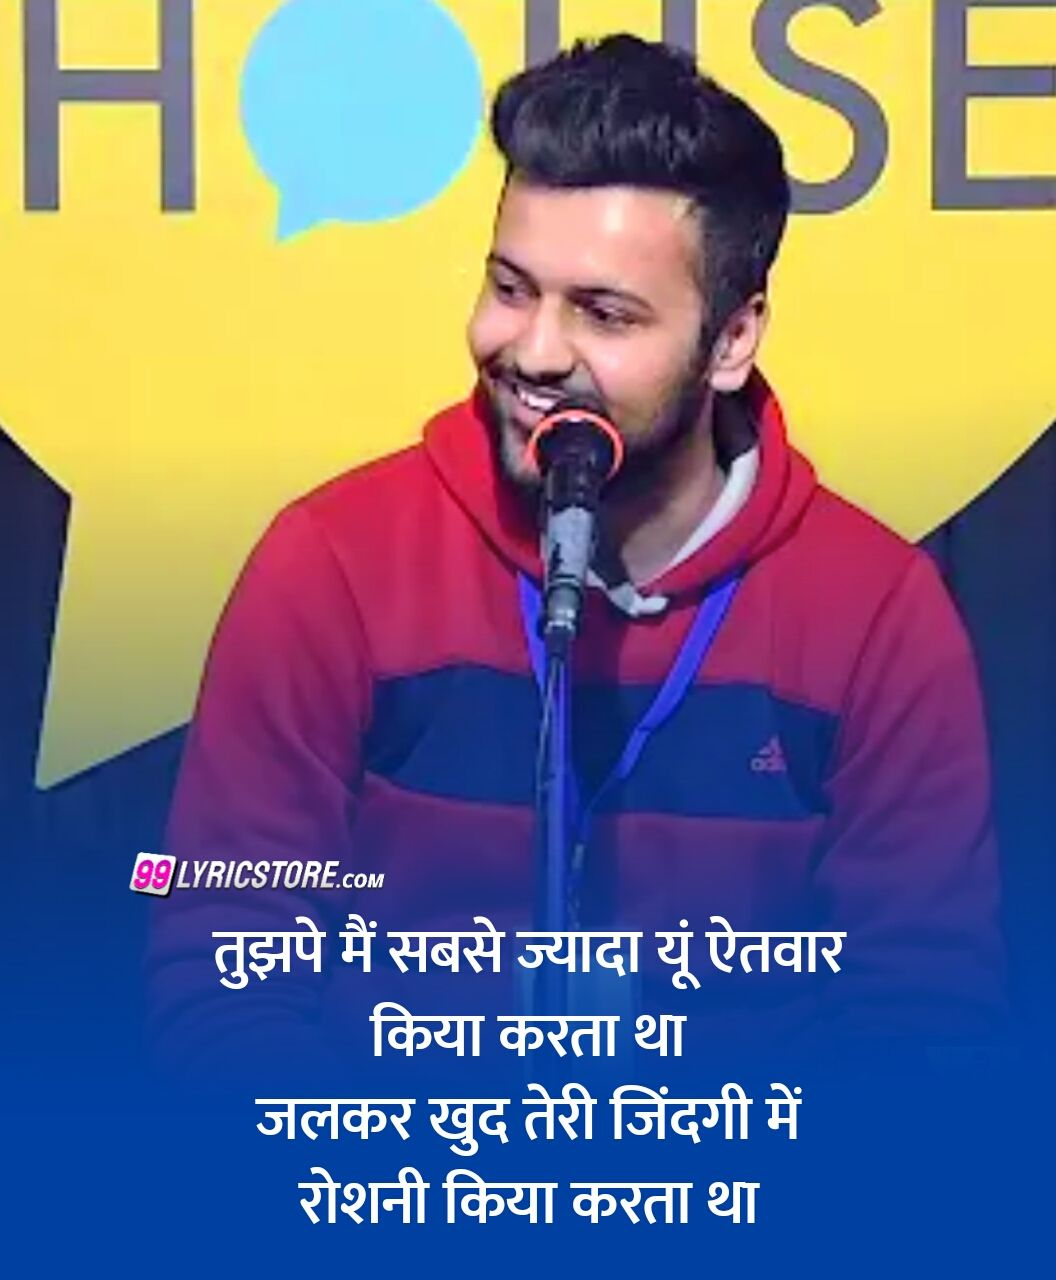 This Beautiful Poetry 'Ab Tujhe Pyaar Karta Nahi Hoon Main' has written and performed by Akash Verma on The Social House's Platform